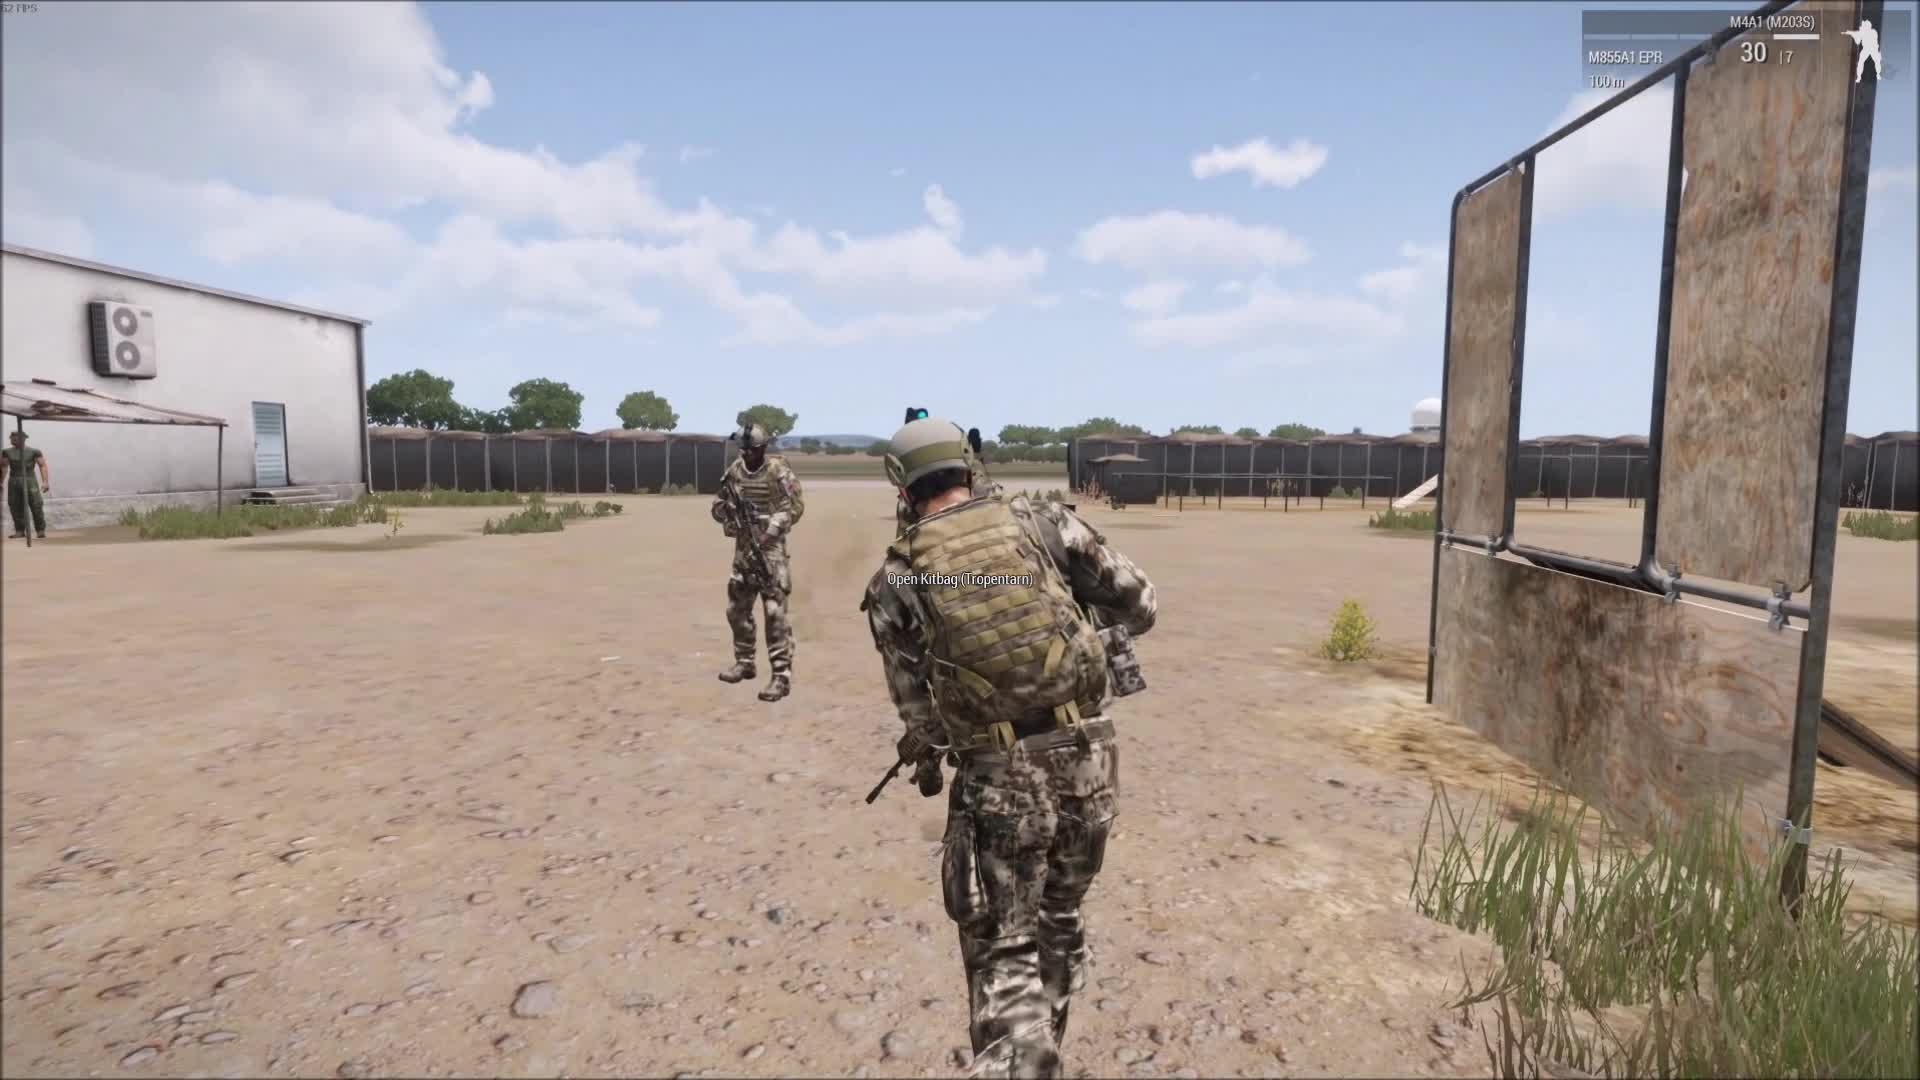 Arma, Fun on the base GIFs